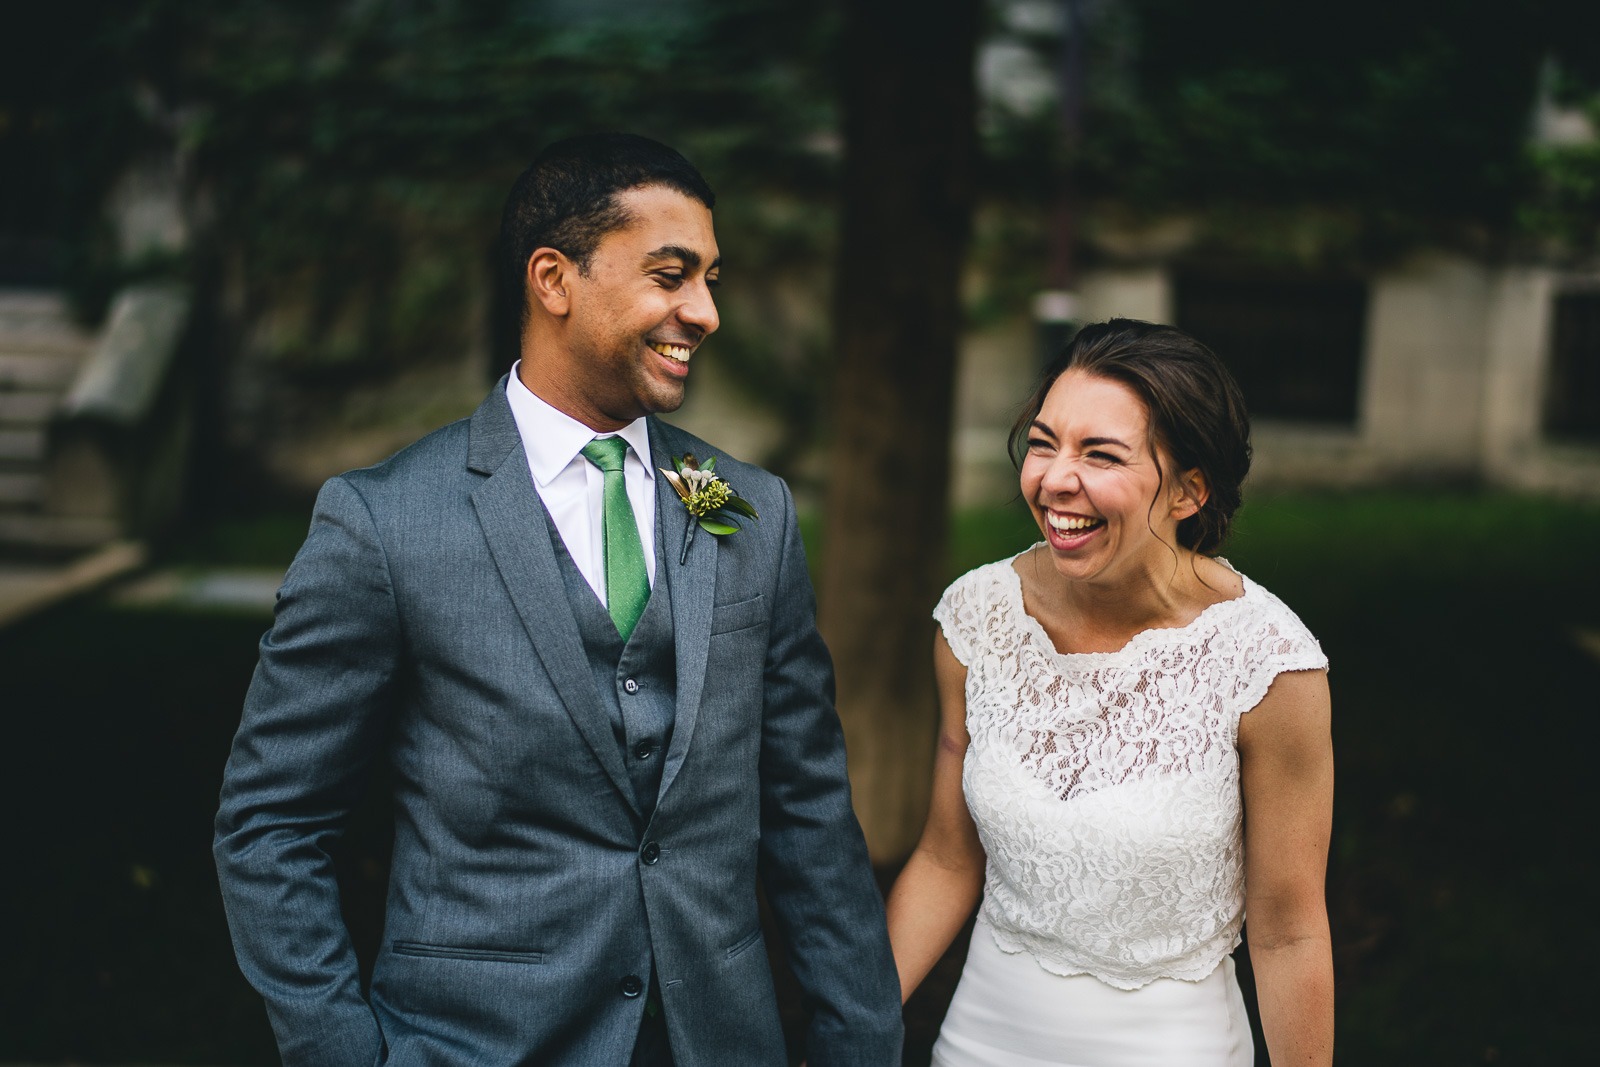 102 chicago wedding photographer best portraits during weddings review - 2018 in Review // My Favorite Chicago Wedding Photography Portraits